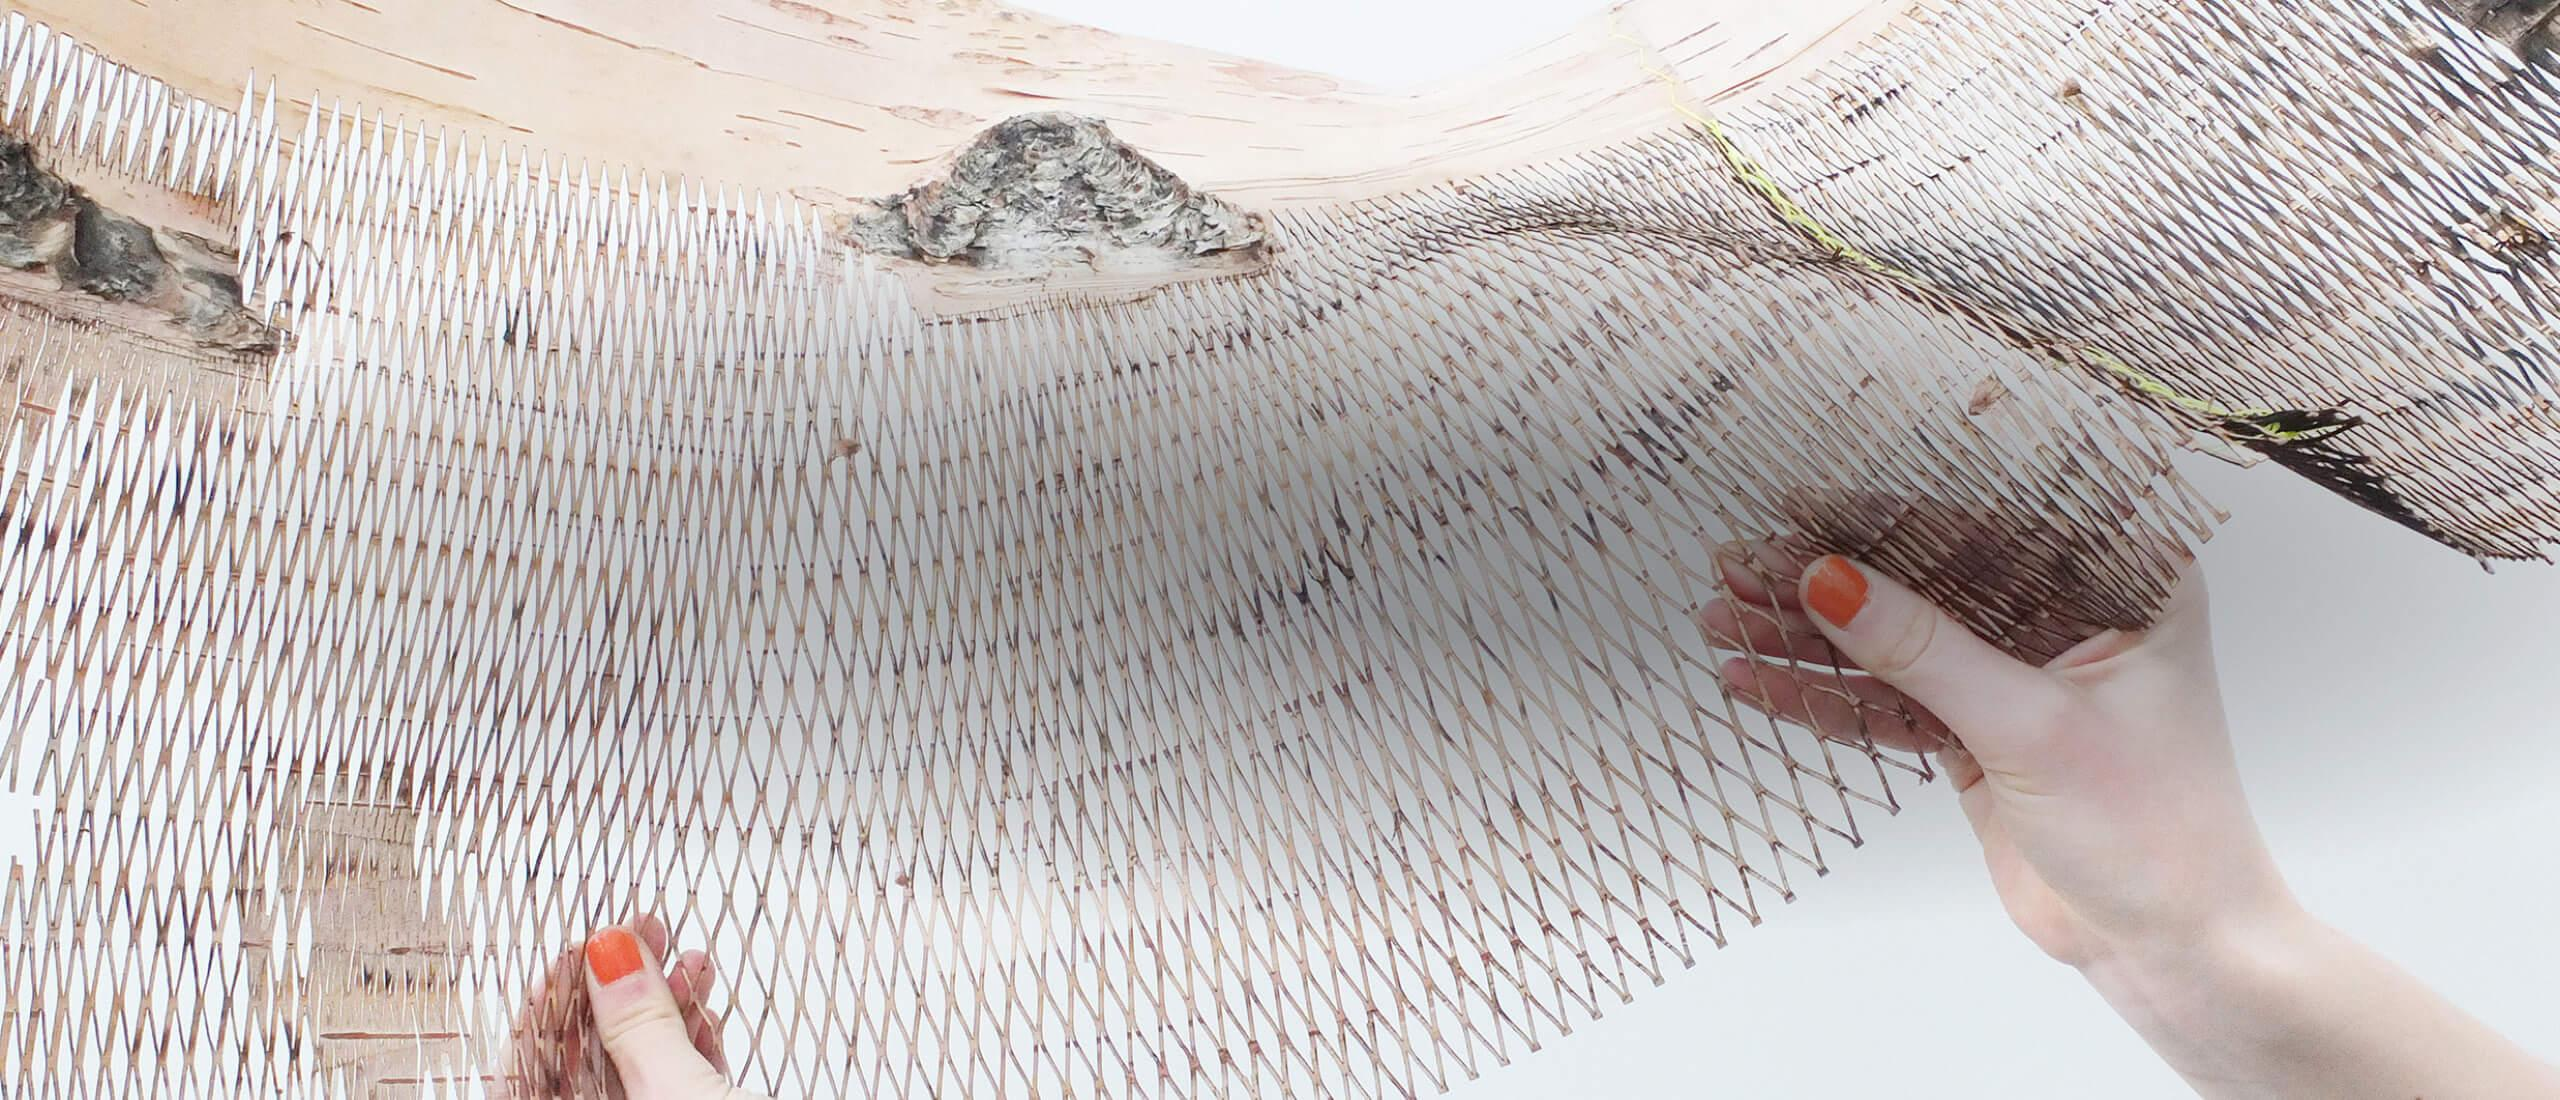 Its Now or Näver - an exhibition which is based on birch bark, on the Nordic Institute in Åland